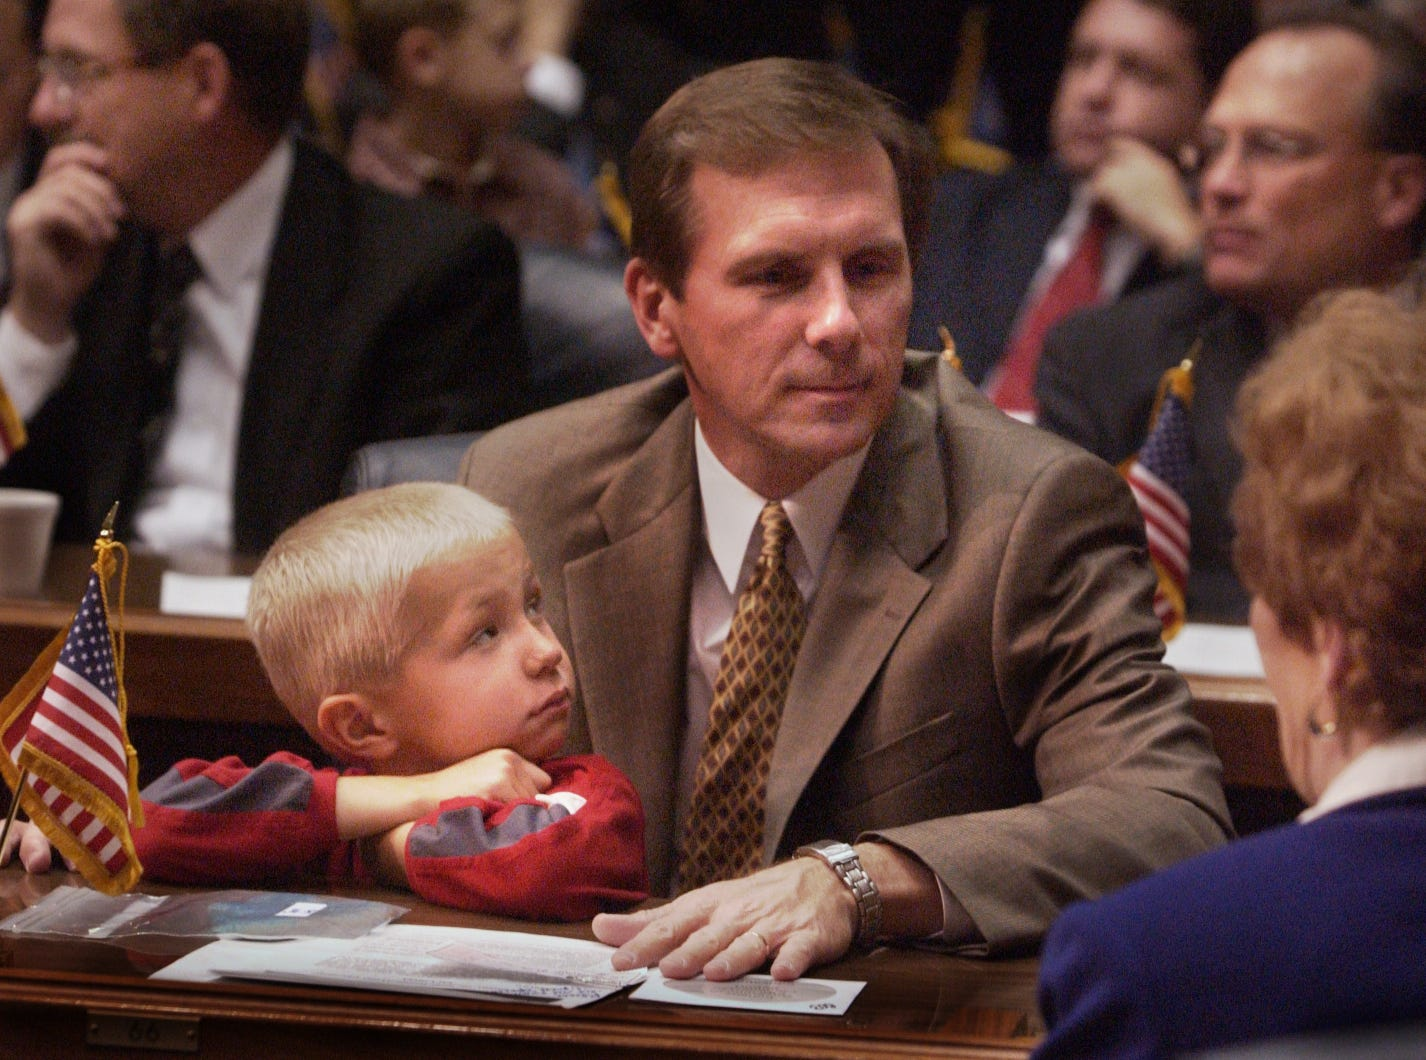 Jared Ripley, 5,  watches his dad, Representative, Mike Ripley (R-Monroe), who is chatting it up with fellow rep, Vaneta Becker (R-Evansville) in 2004.